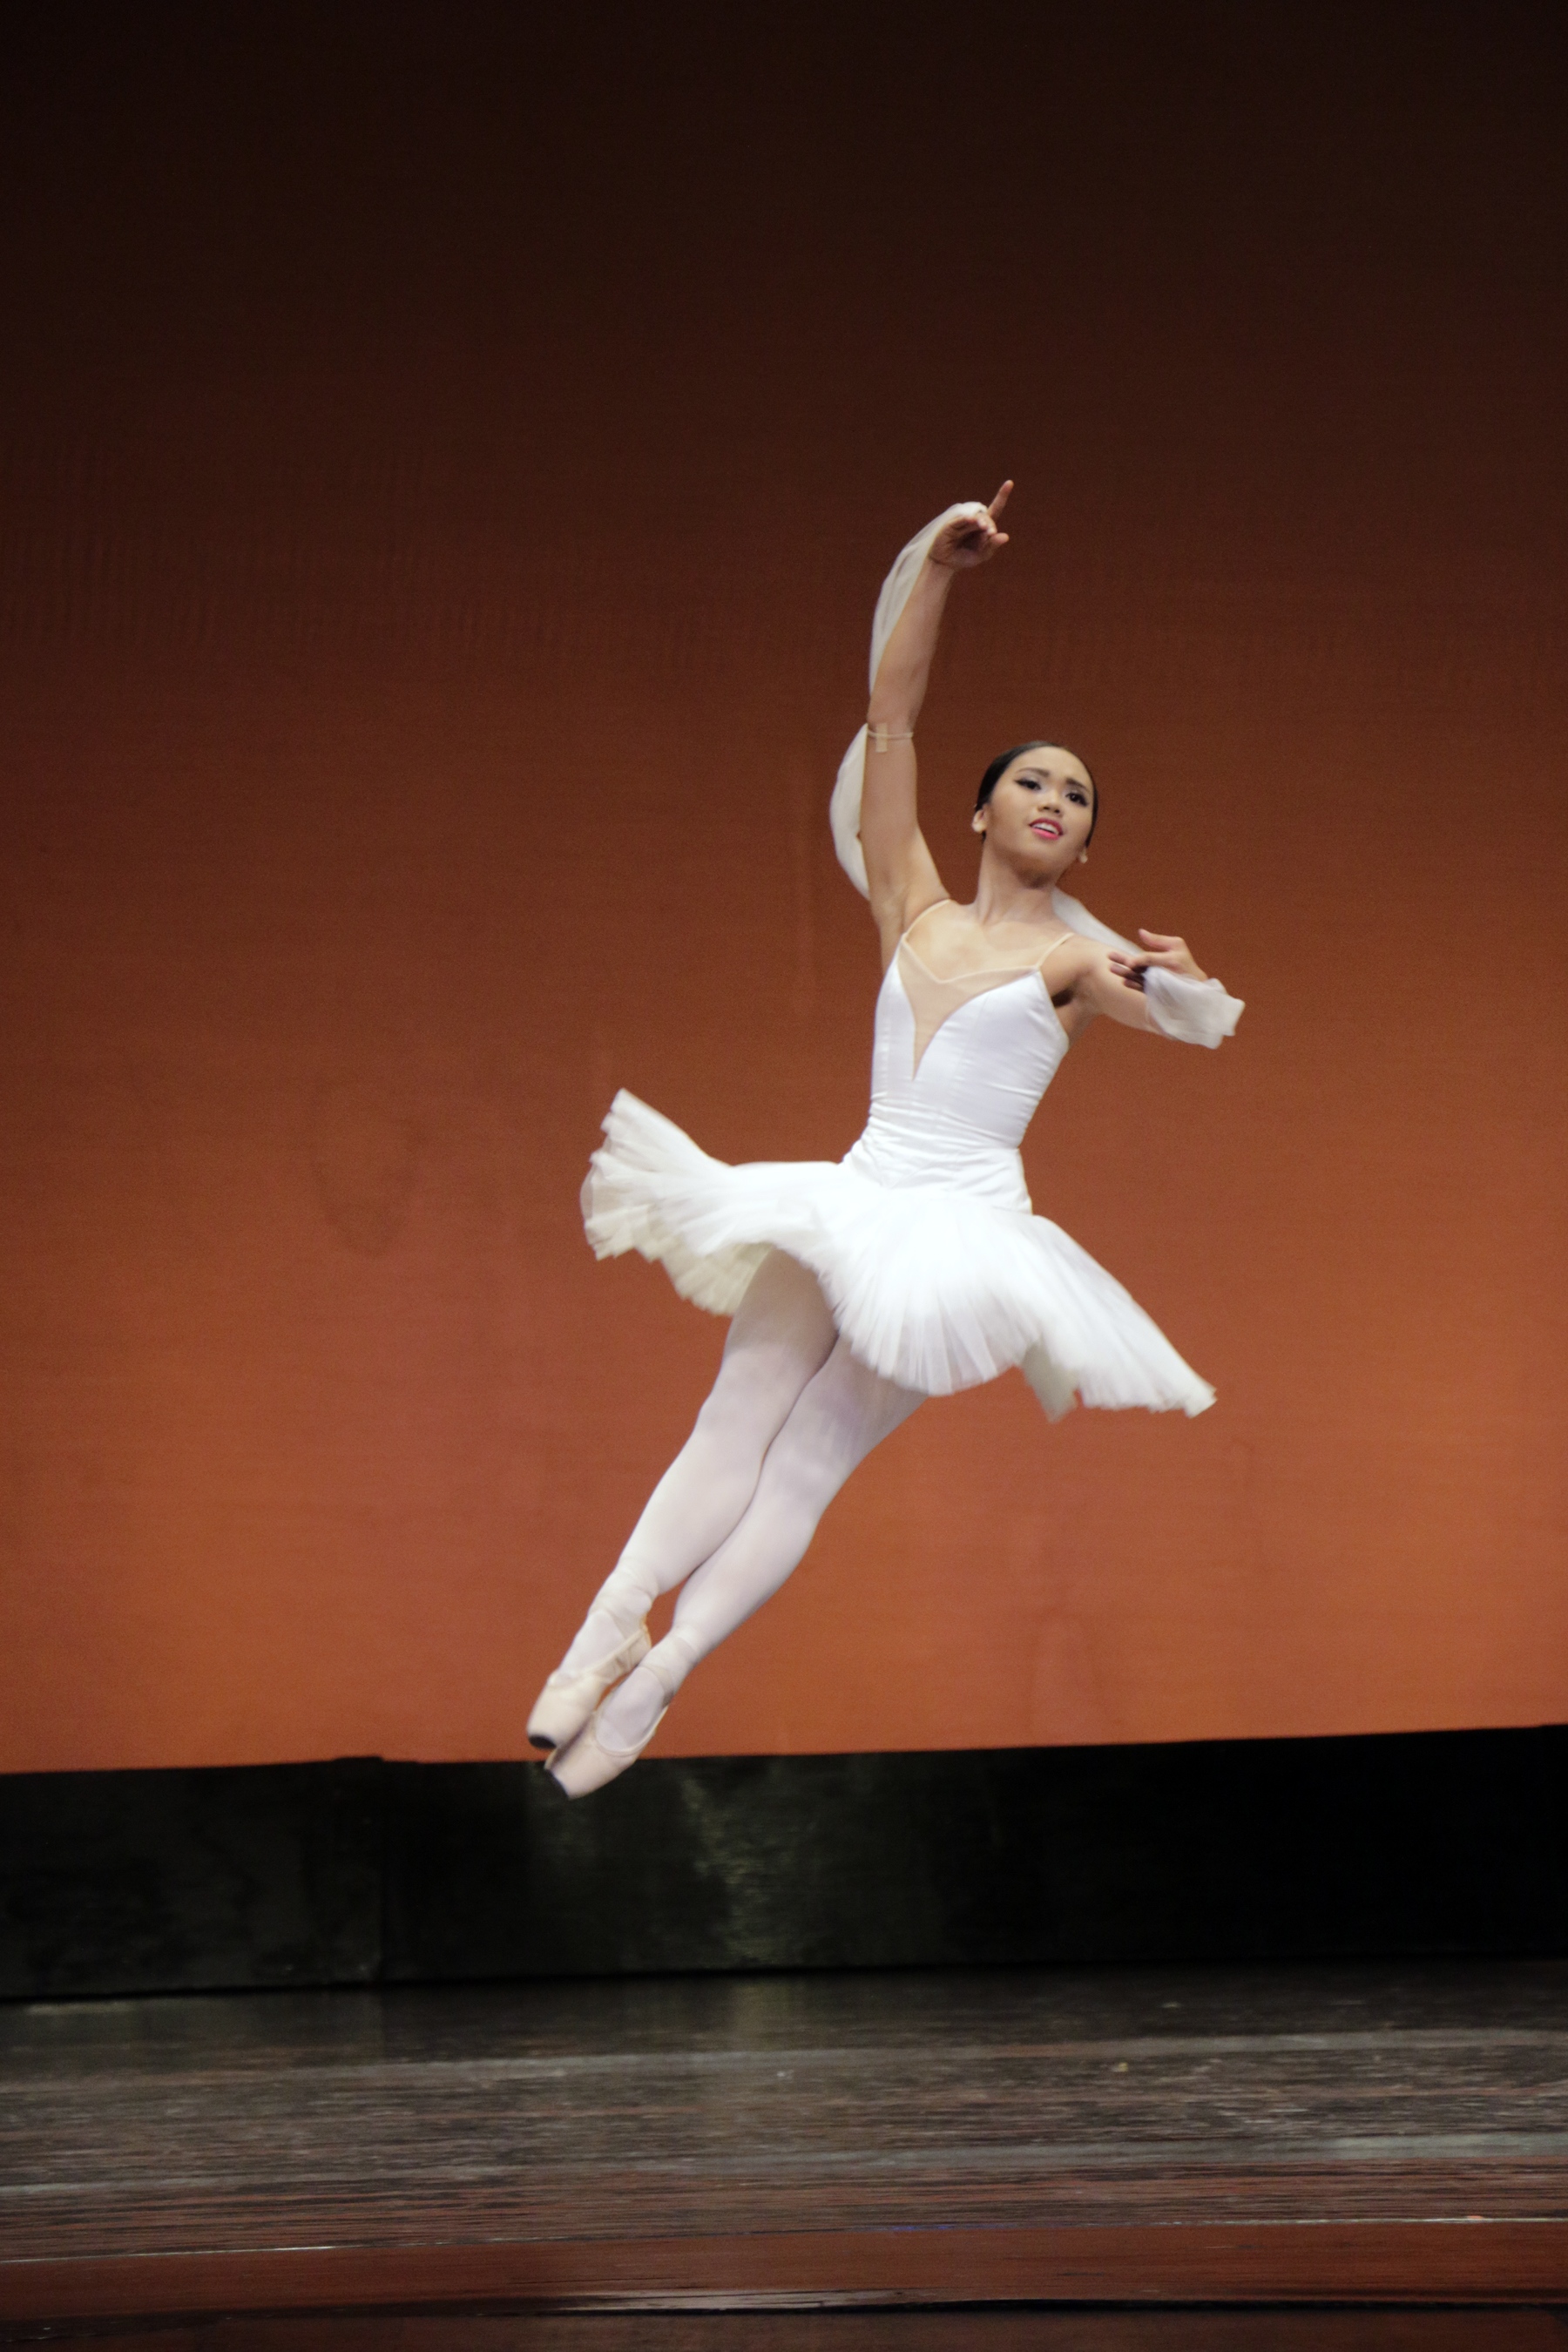 Abby says she felt good as she danced the first few steps of the 2nd Shades Variation from La Bayadere during the CCP Ballet Competition. Photo Kiko Cabuena courtesy of CCP